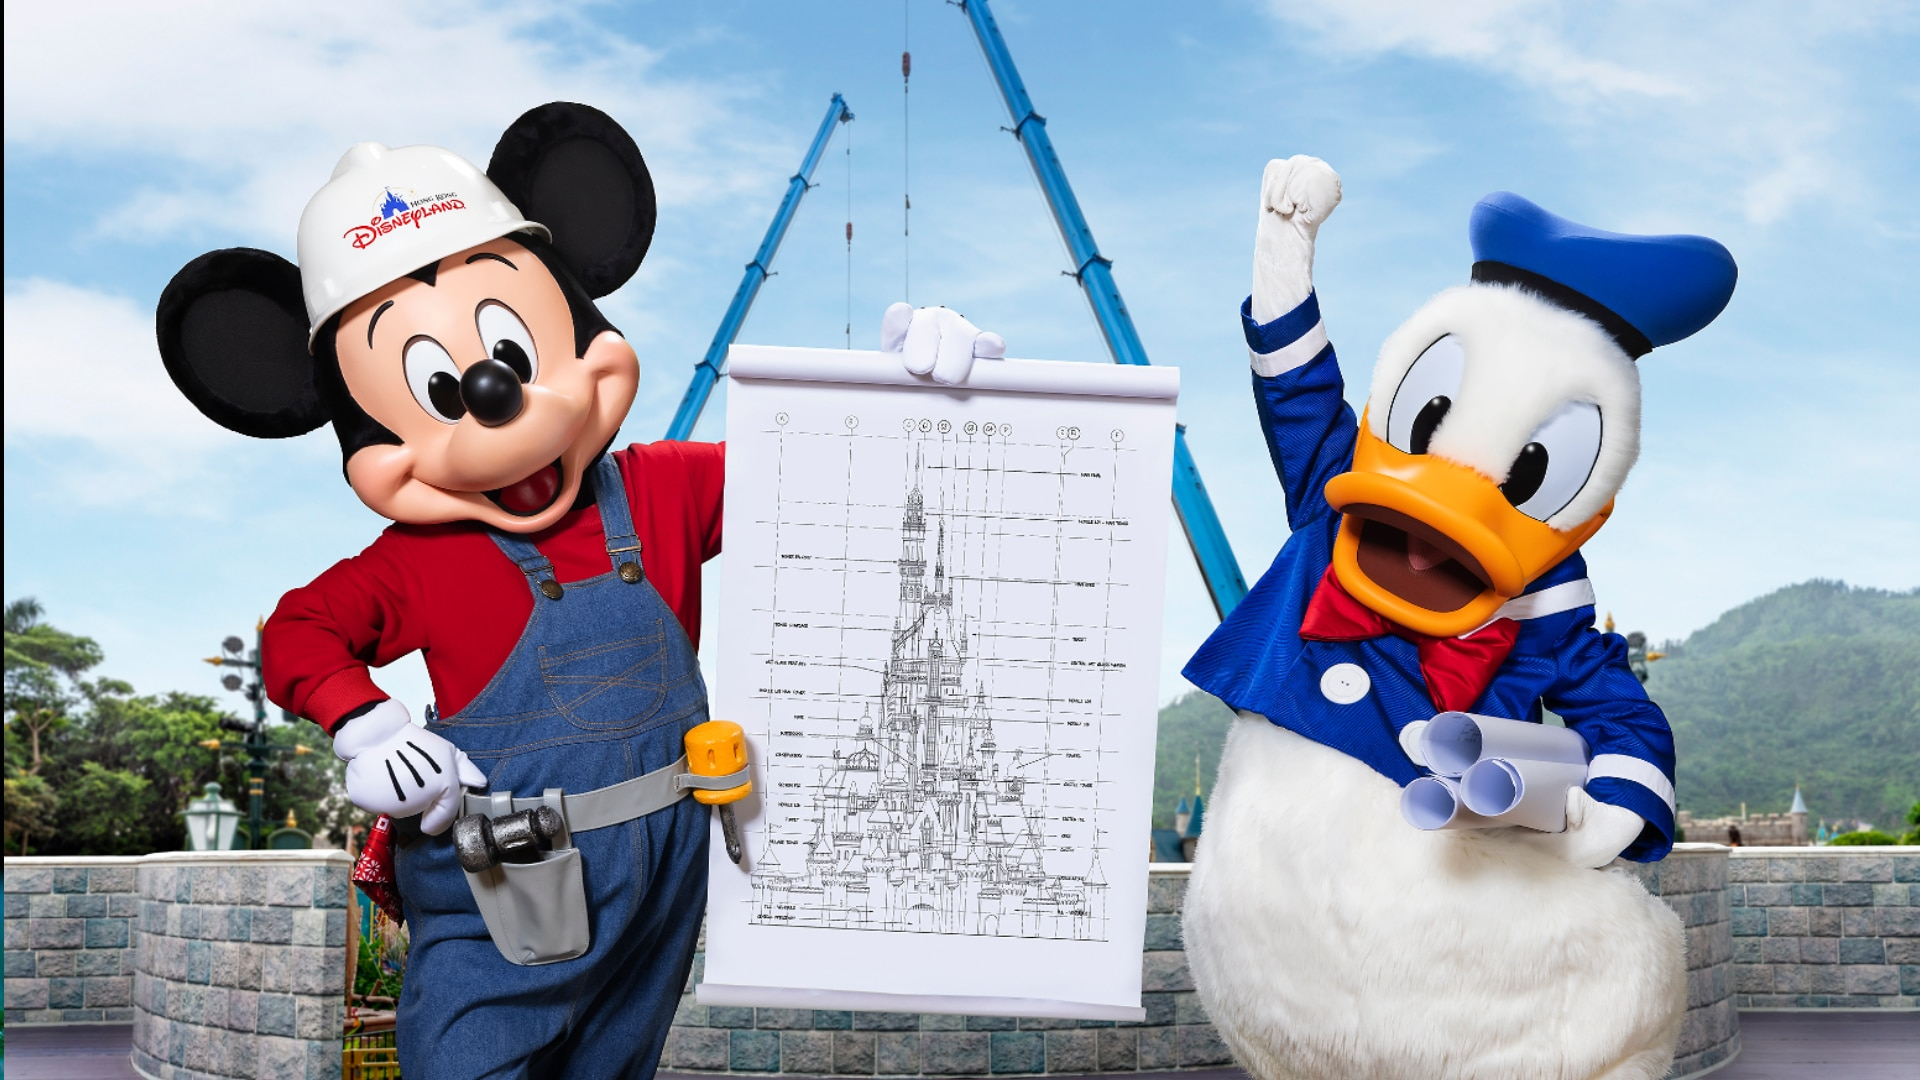 Hong Kong Disneyland Castle Transformation Reaches New Stage with Tower Additions Representing Beloved Disney Princess Stories